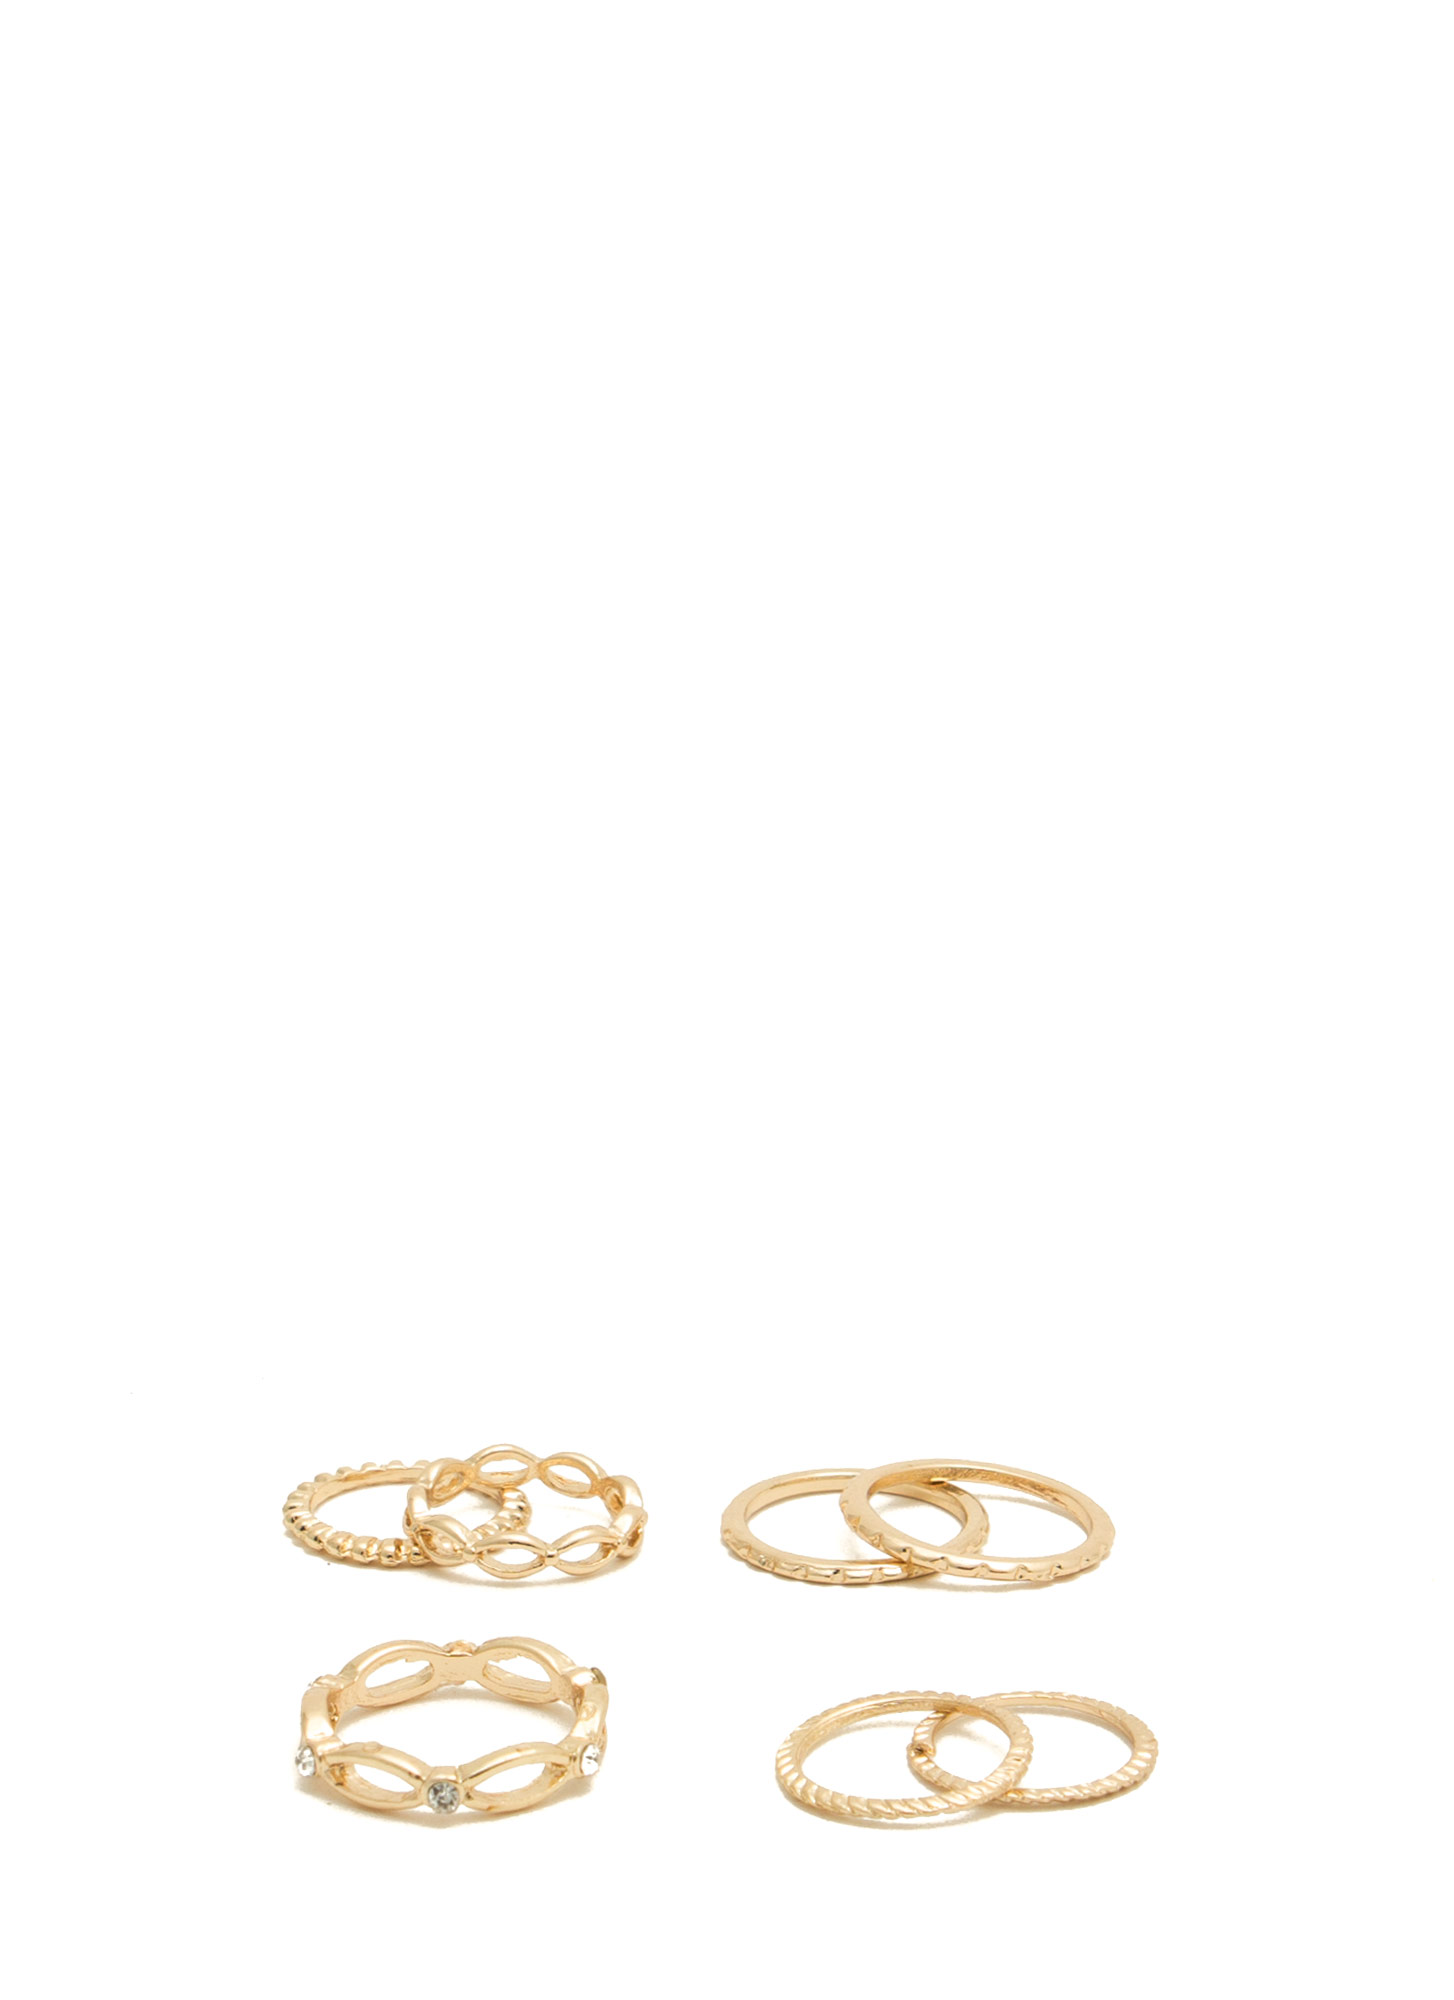 Dainty 'N Textured Metallic Ring Set GOLD